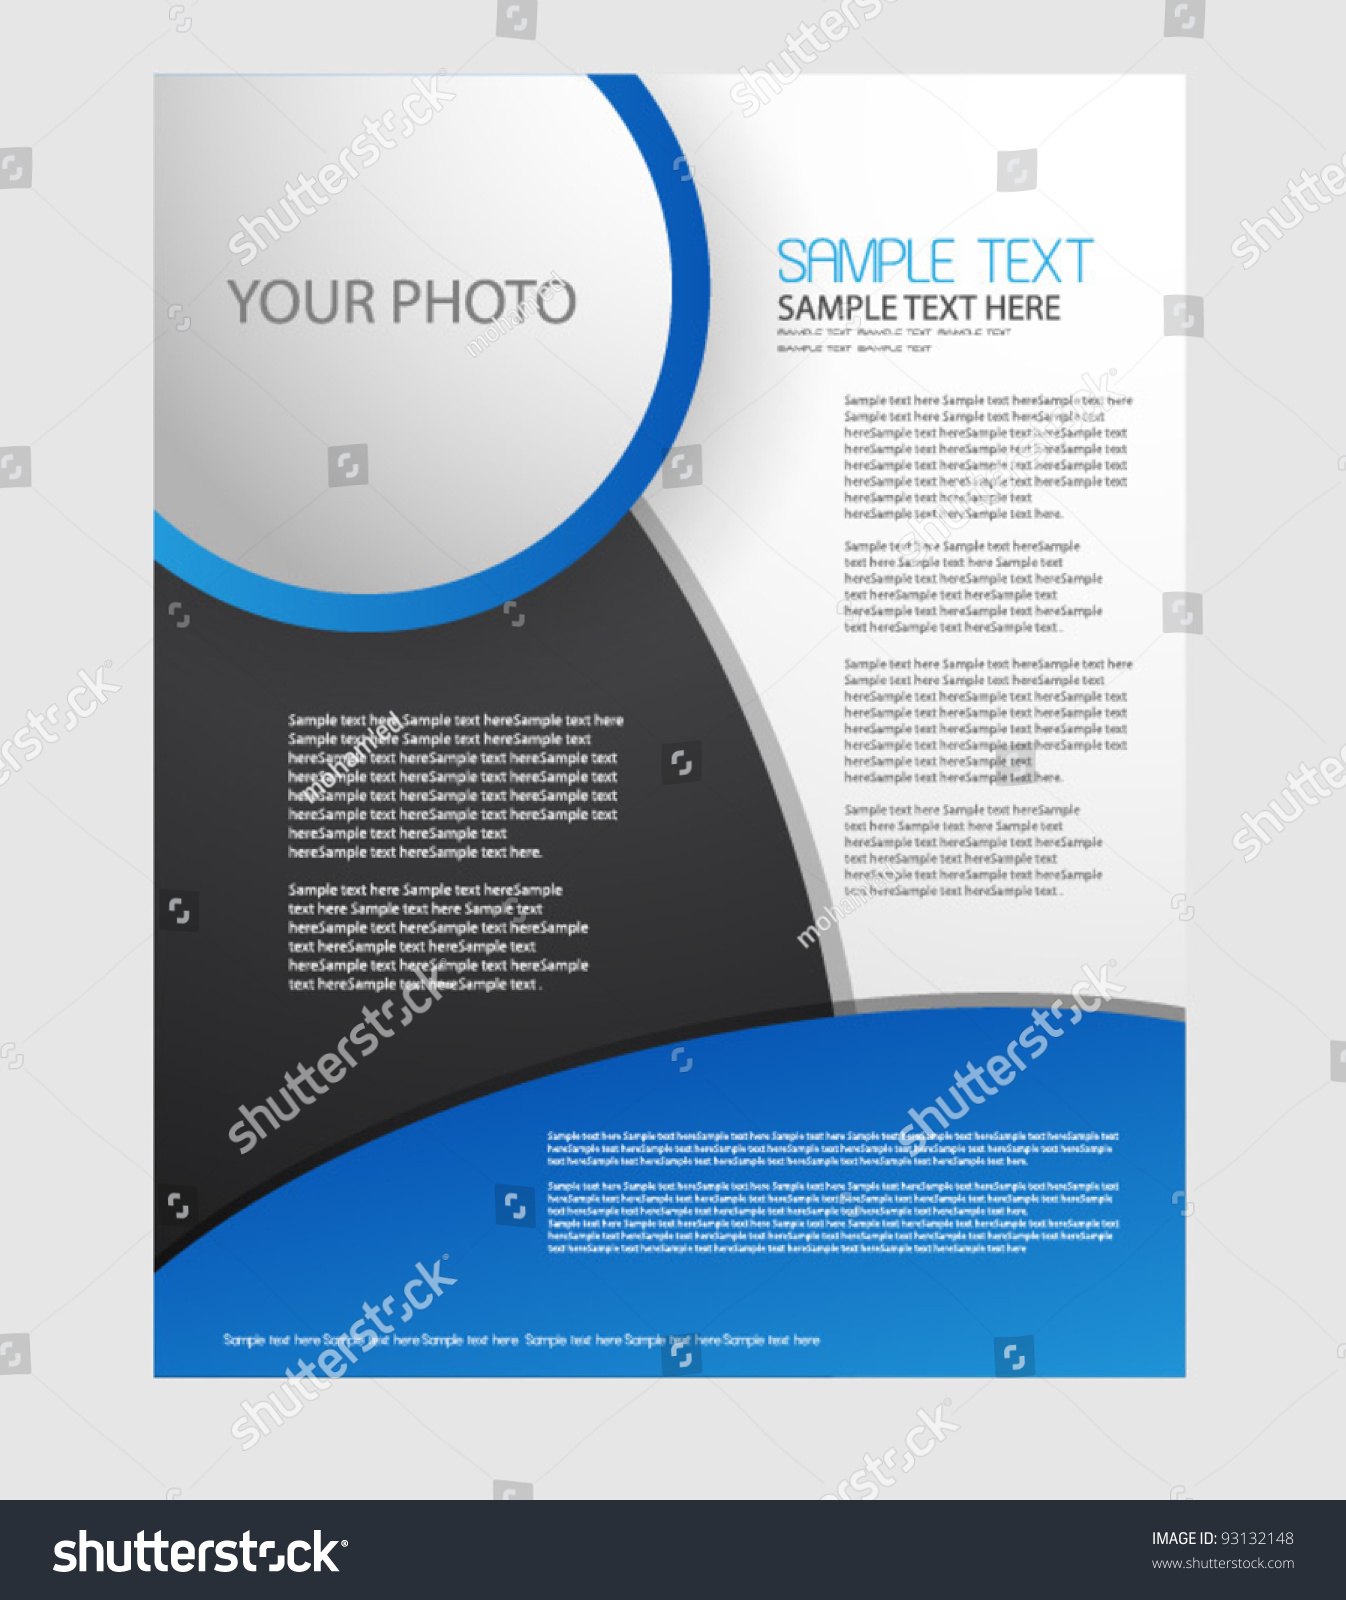 Business Brochure Design Vector Illustration 93132148 – Business Brochure Design